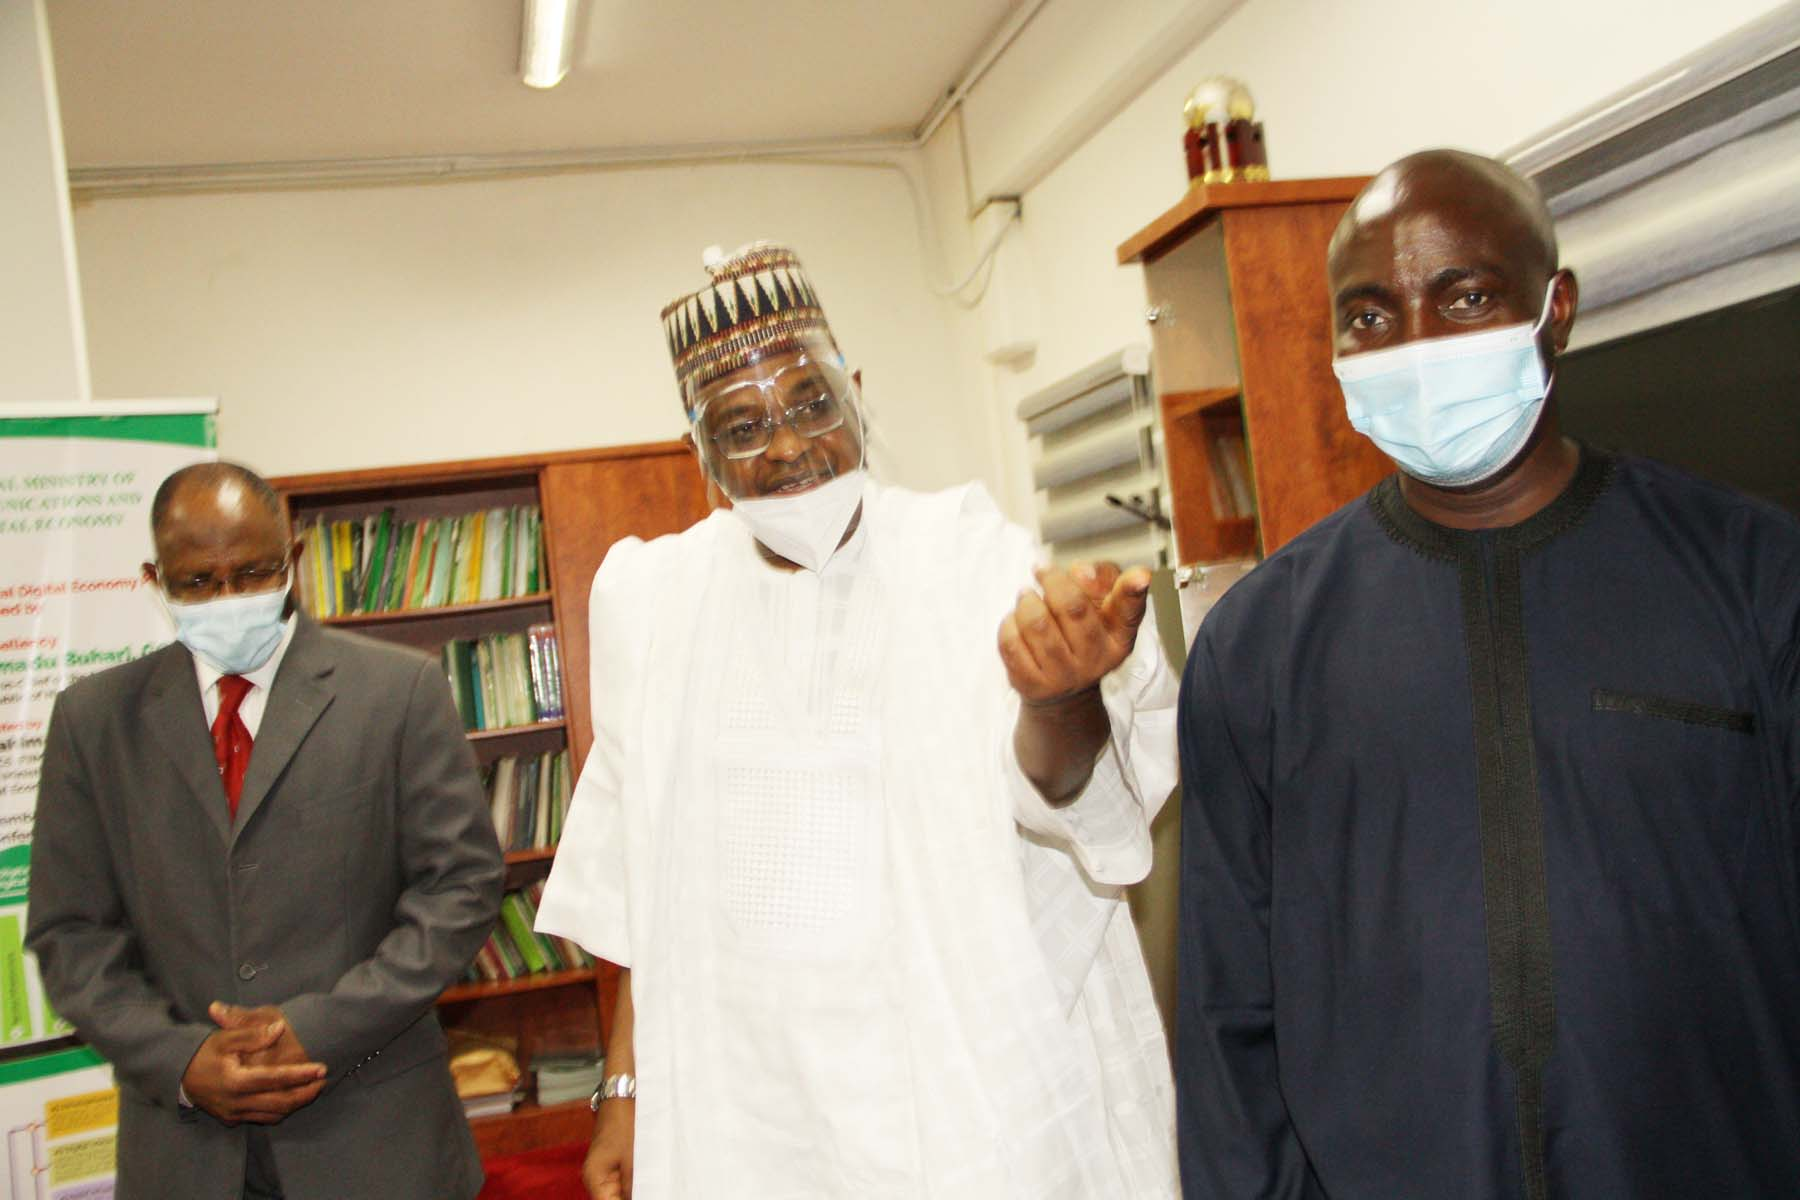 L-R,  Director General, Securities and Exchange Commission Mr. Lamido Yuguda, Minister of Communications and Digital Economy Mr Ali > Pantami and Assistant Director, SEC Mr Bagudu Waziri during a Meeting > between SEC and > Minister of Communications and Digital Economy in Abuja > yesterday